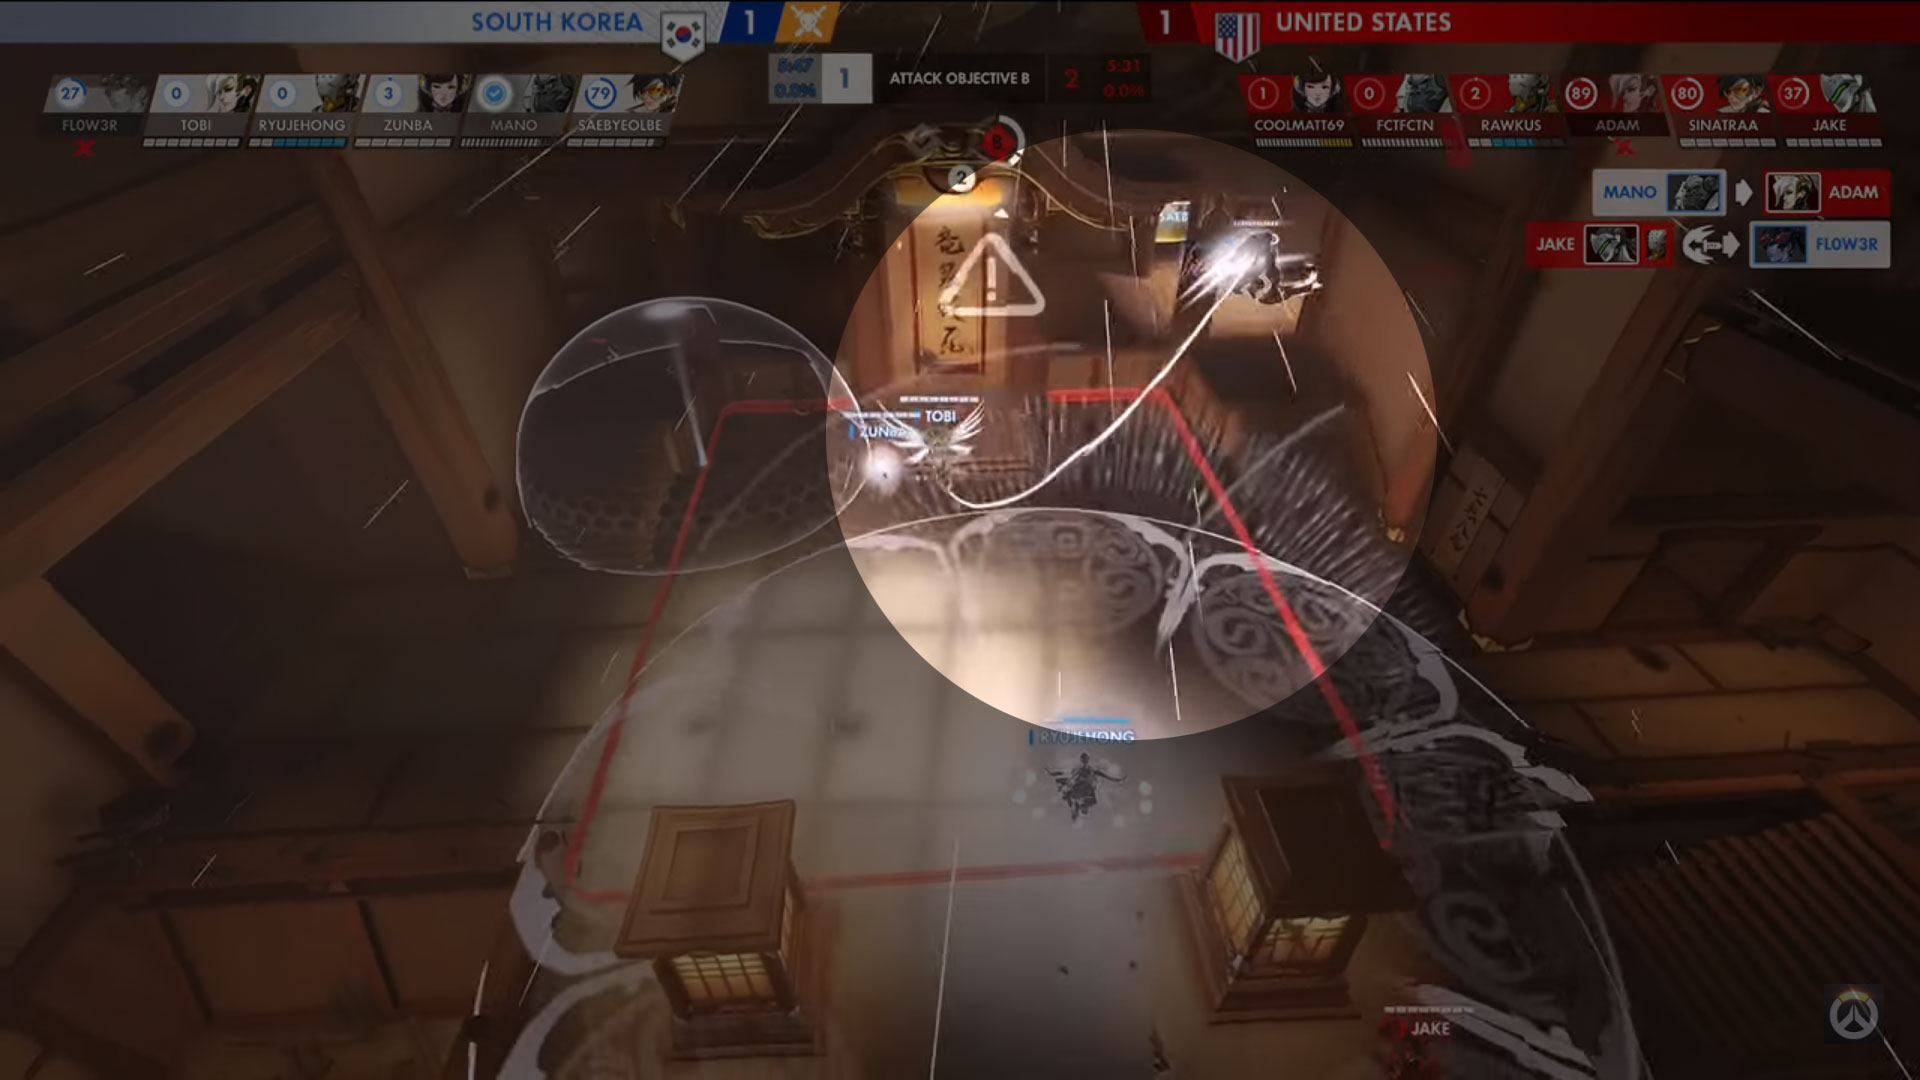 Enhanced image of new spectator system in Overwatch.